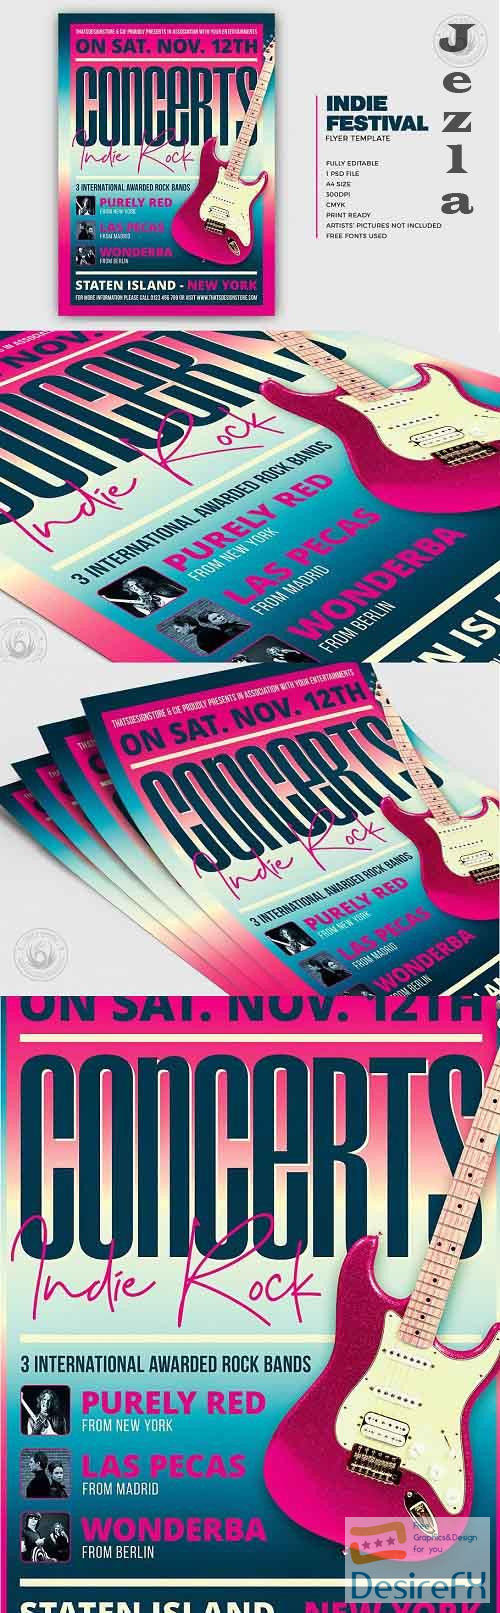 Indie Fest Flyer Template V9 - 5317934